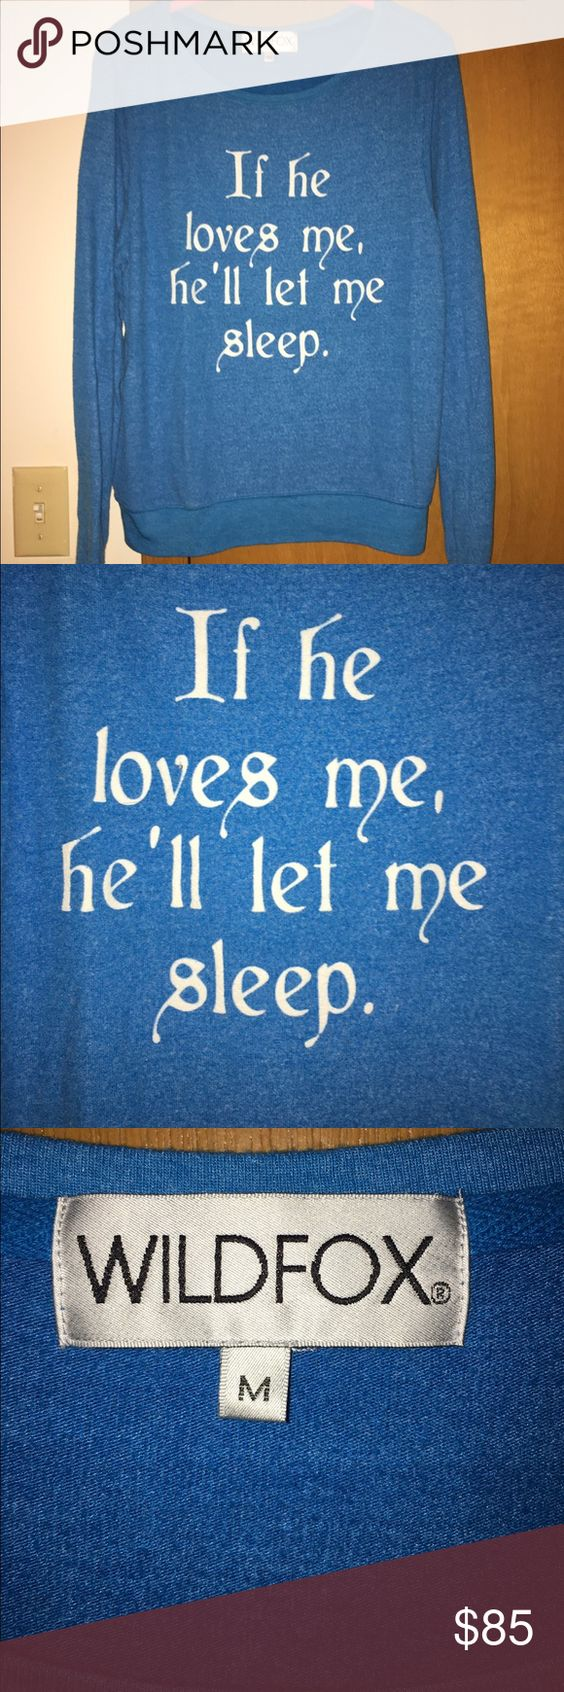 """Wildfox """"If he loves me, he'll let me sleep"""" BBJ Size medium.  Worn once, light piling.  Words are glittery. Wildfox Tops Sweatshirts & Hoodies"""